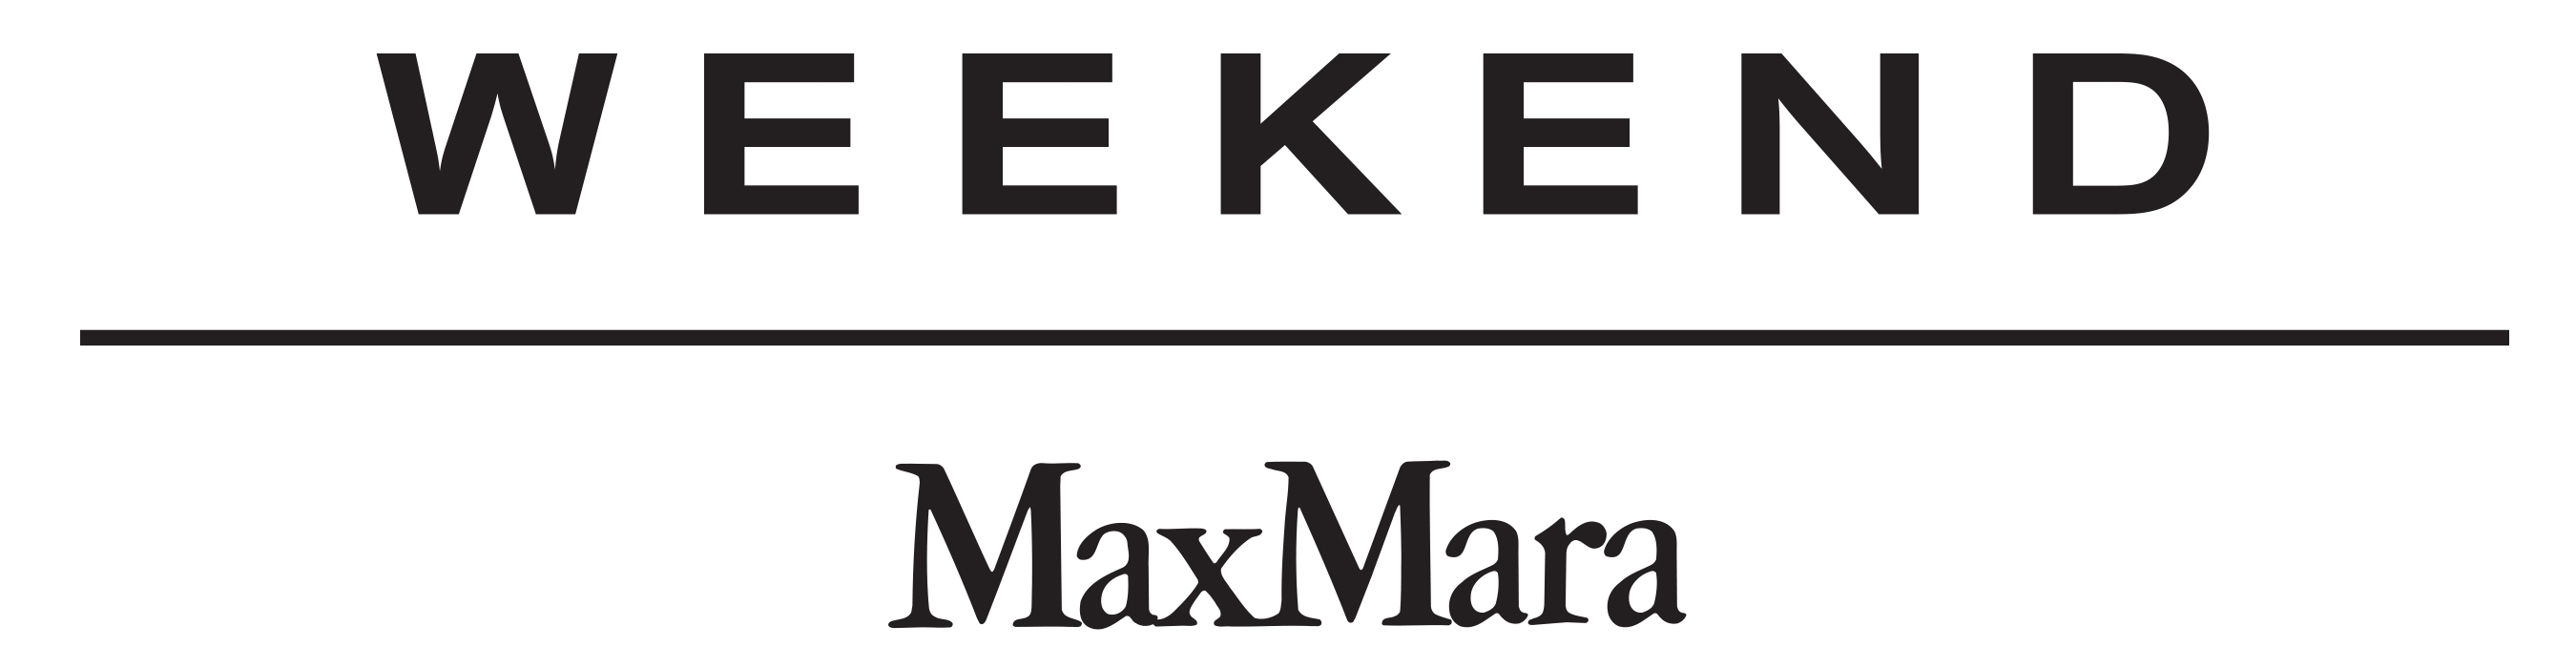 Weekend Max Mara – Logos Download